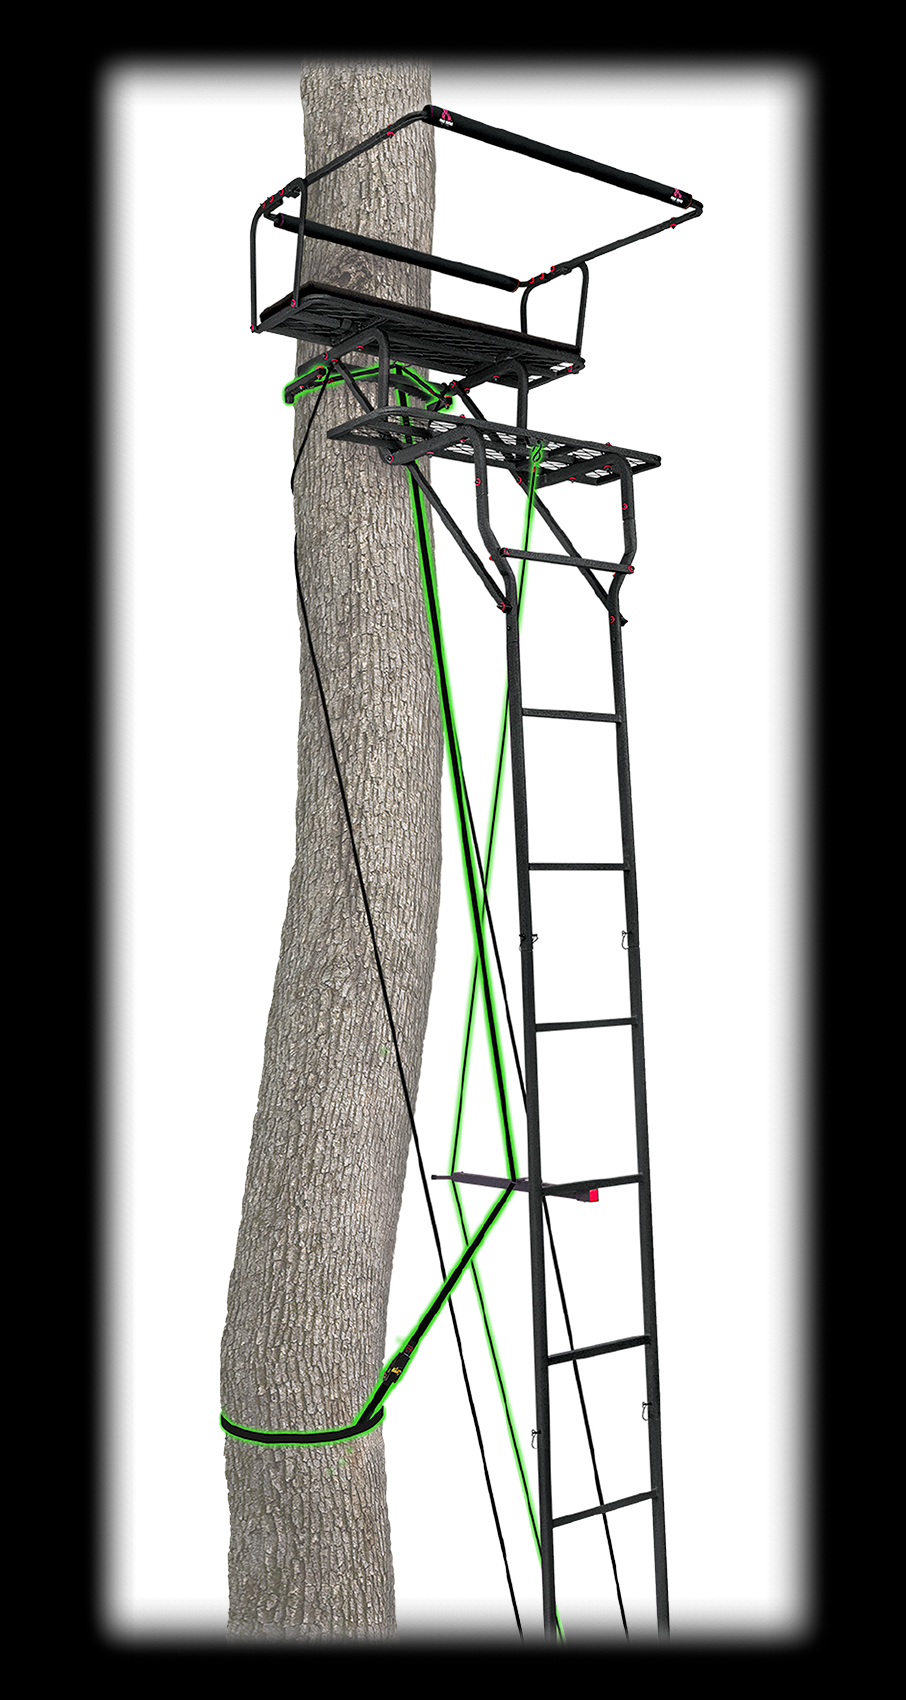 15' Deluxe Two-Man Ladderstand